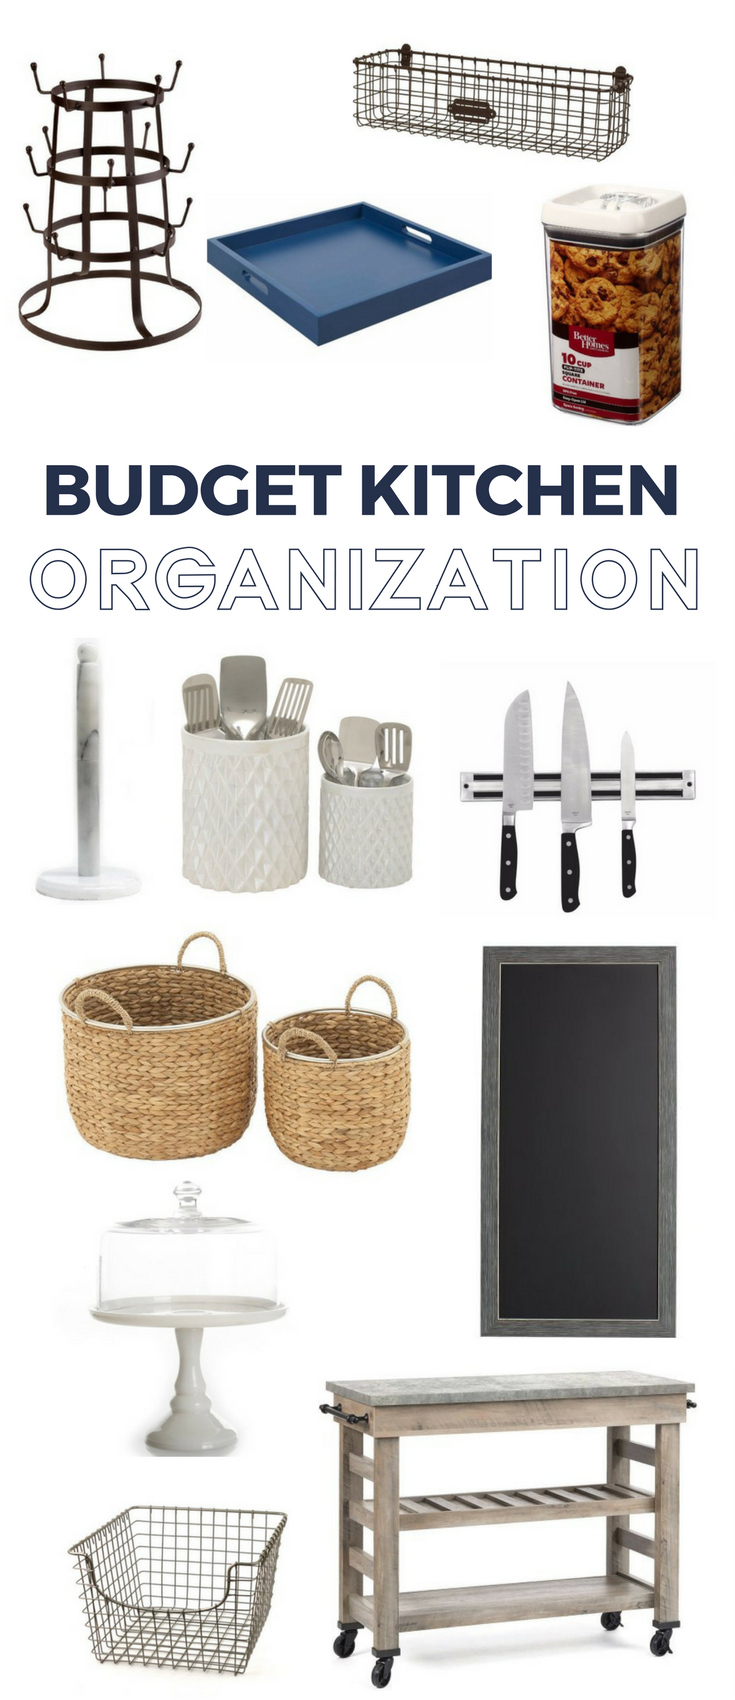 Budget friendly kitchen organization ideas. Pretty tools that wrangle kitchen items while keeping your space beautiful.